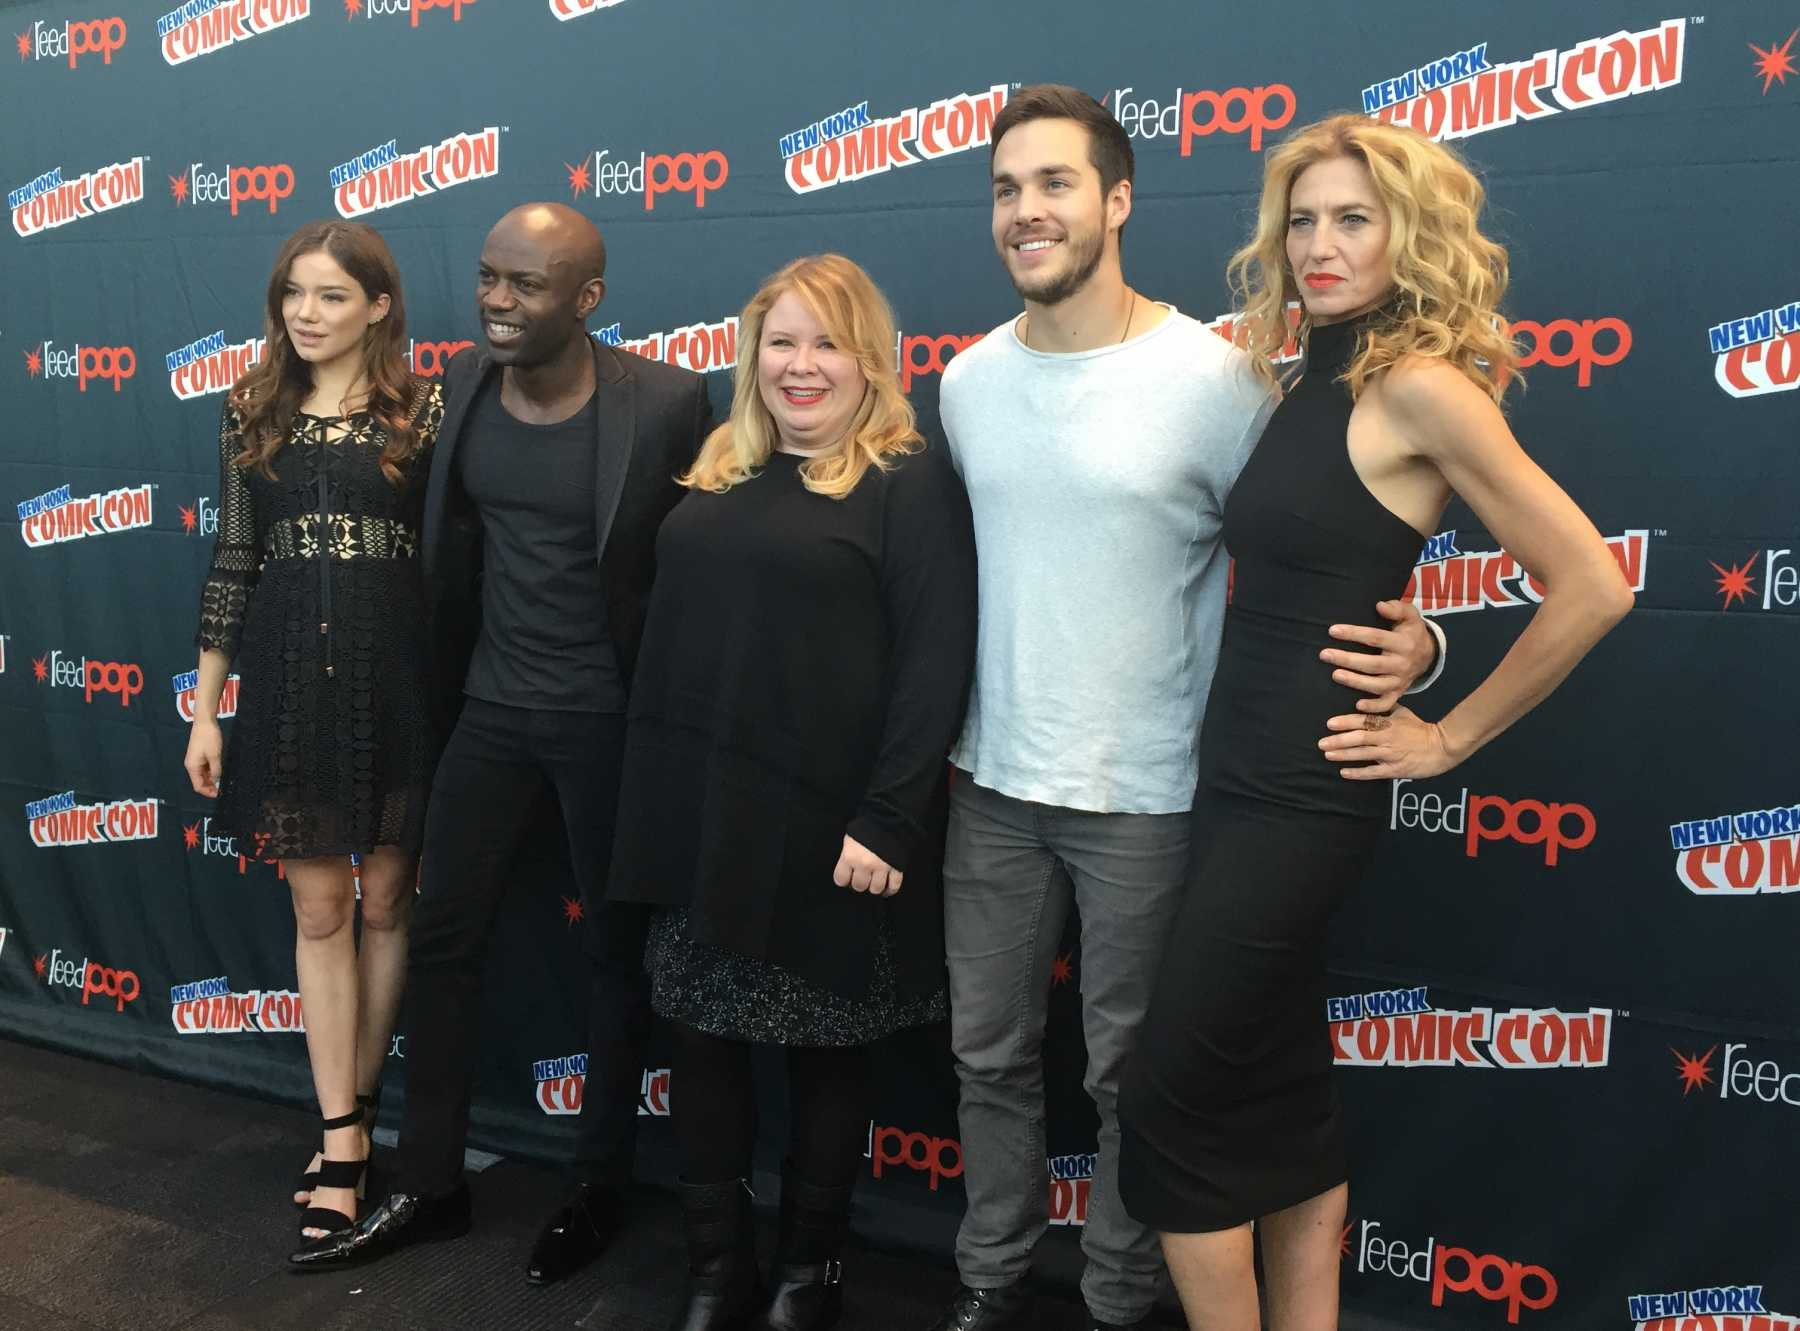 The Cast Of CW's 'Containment' Tease Their Premiere Season At NYCC | Containment